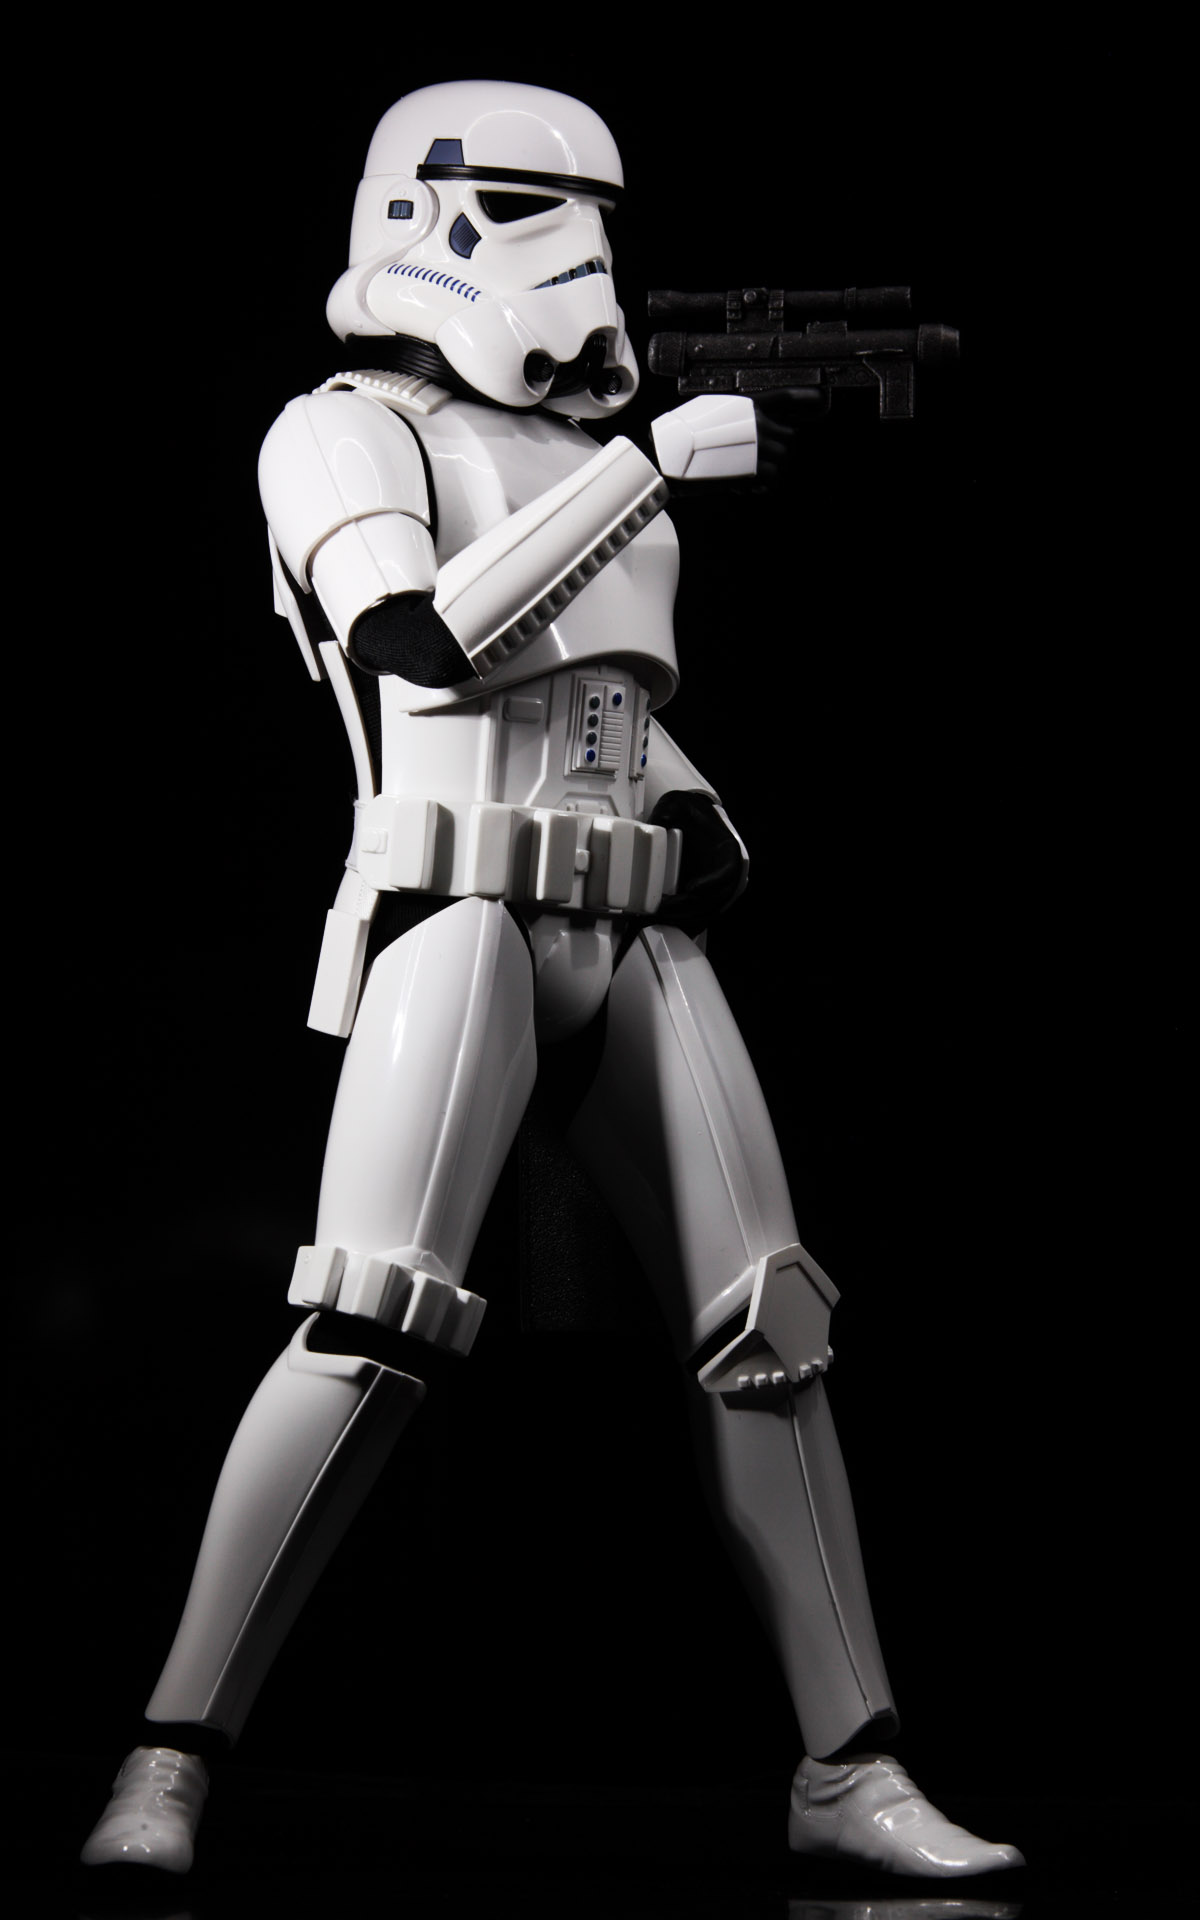 hottoys-star-wars-episode-4-a-new-hope-stormtroopers-set-picture09